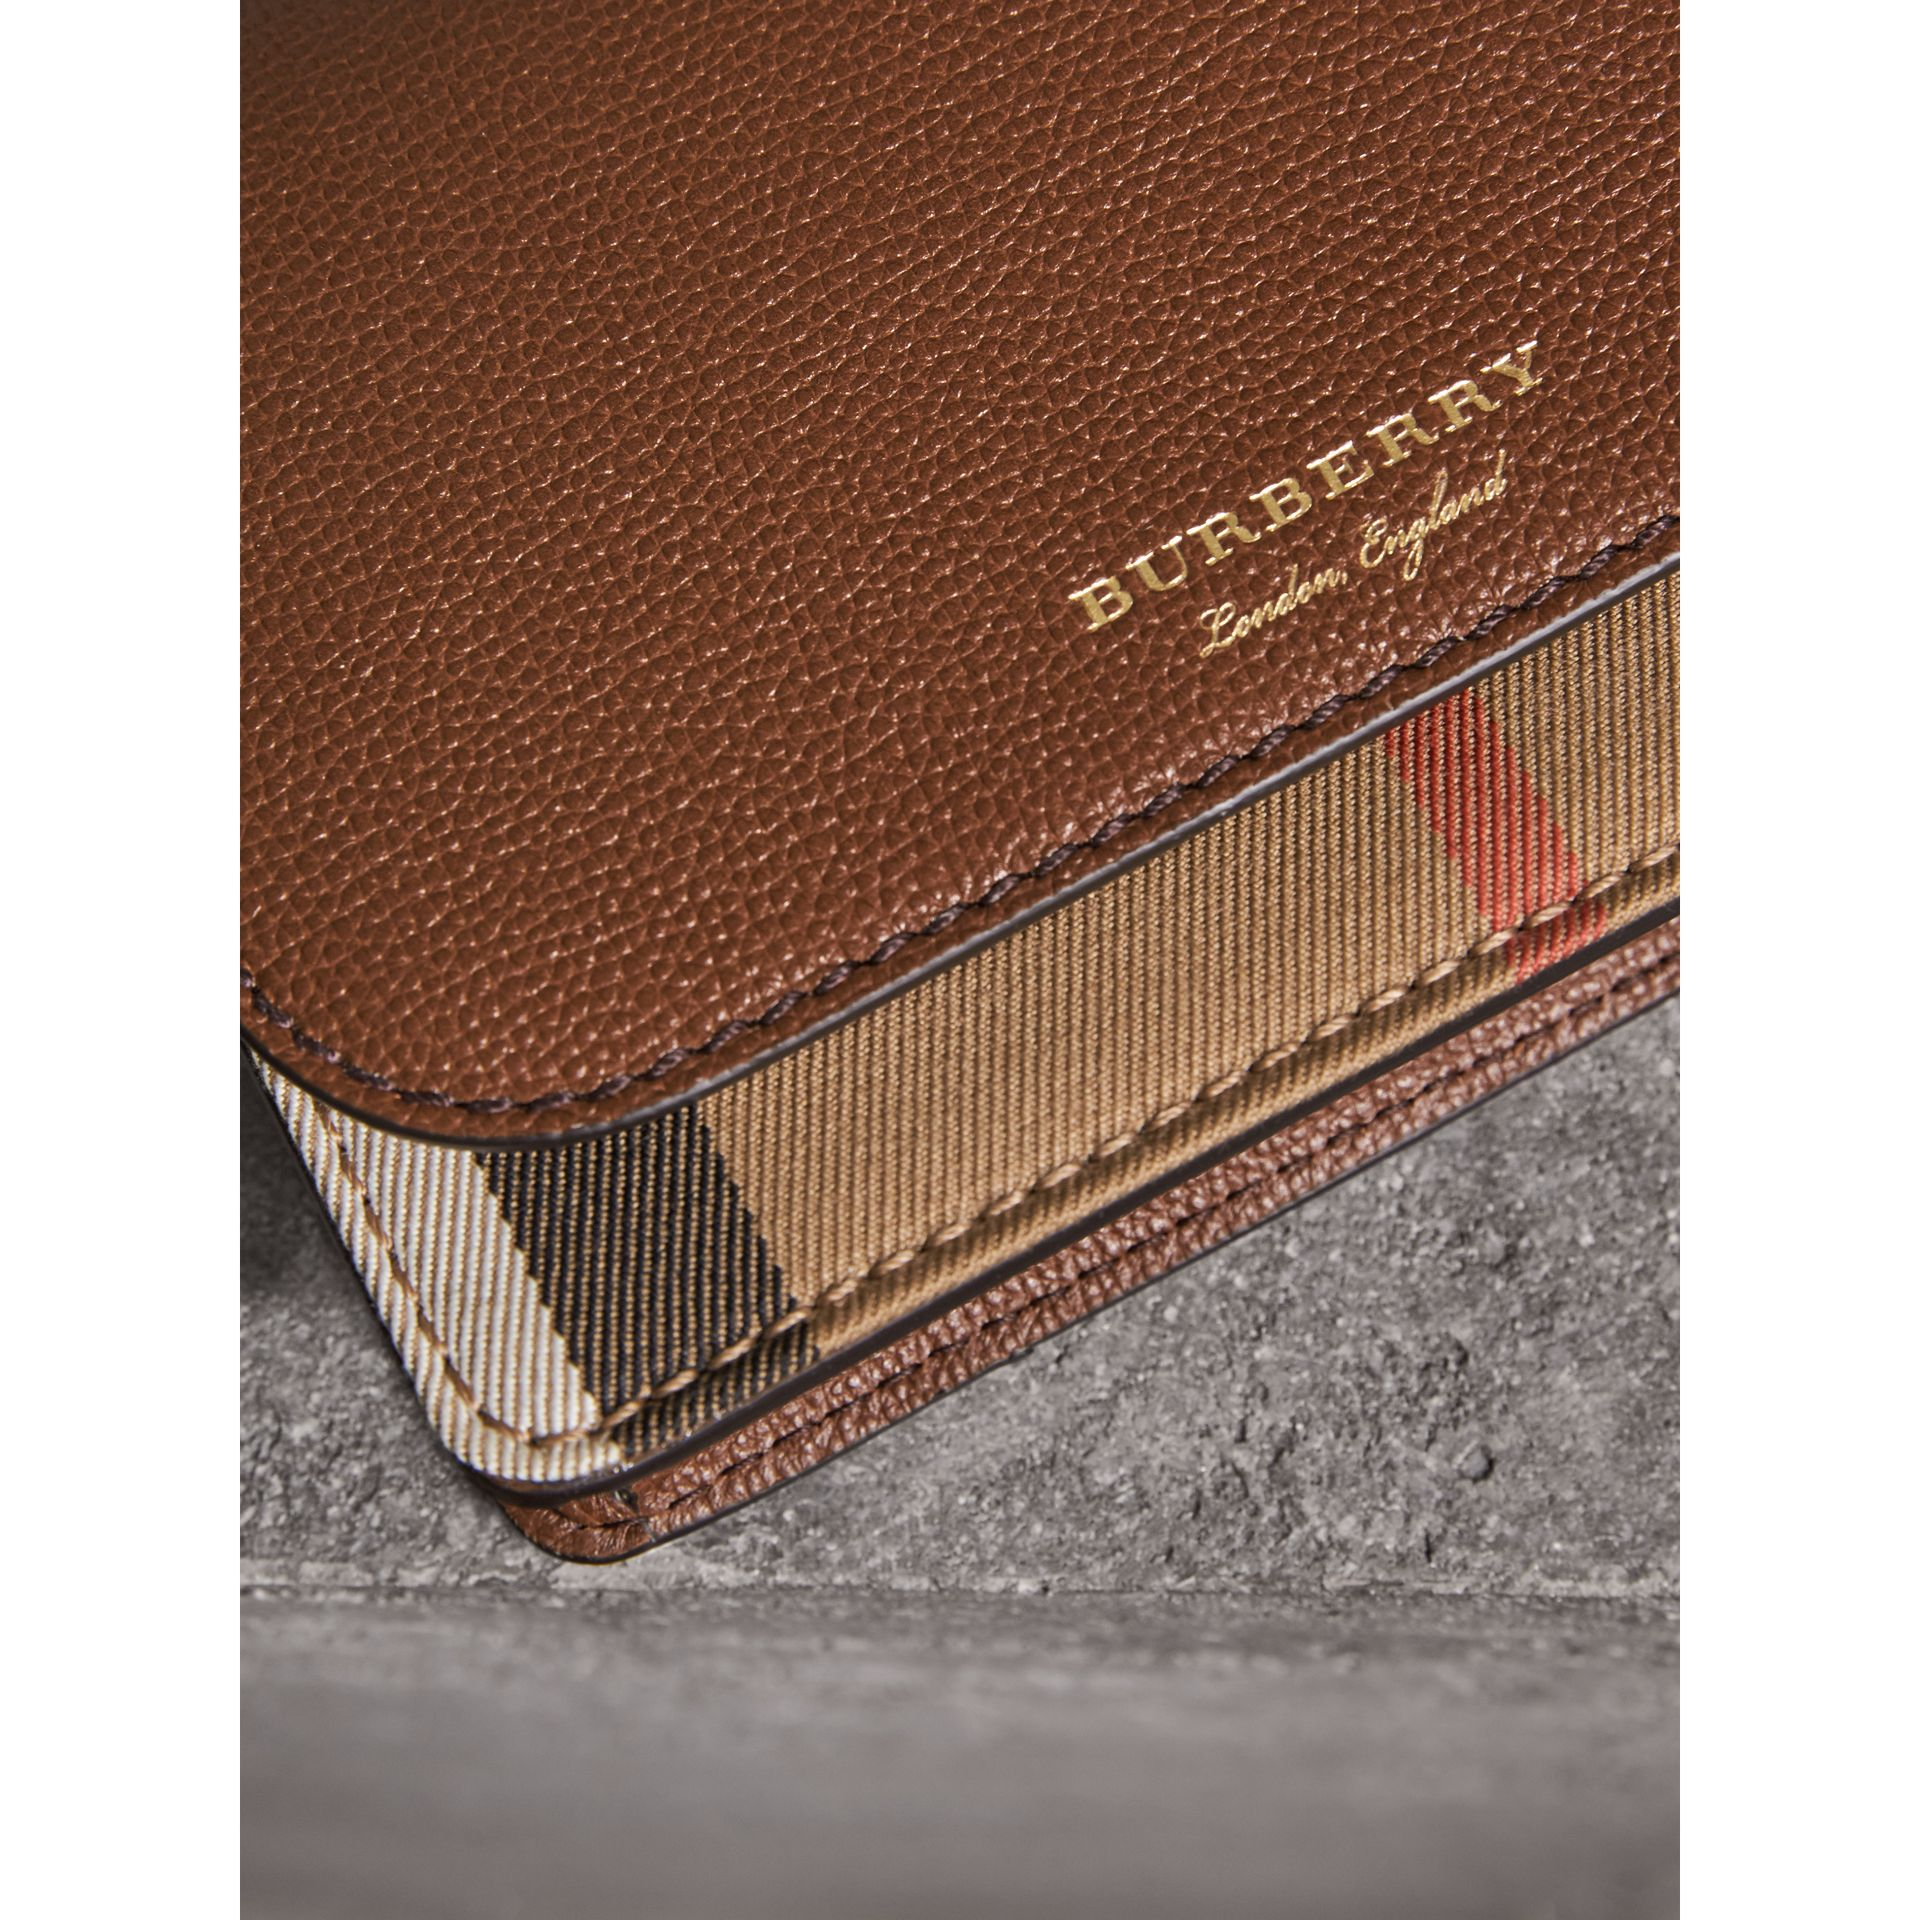 Leather and House Check Wallet with Detachable Strap in Tan - Women | Burberry United Kingdom - gallery image 1